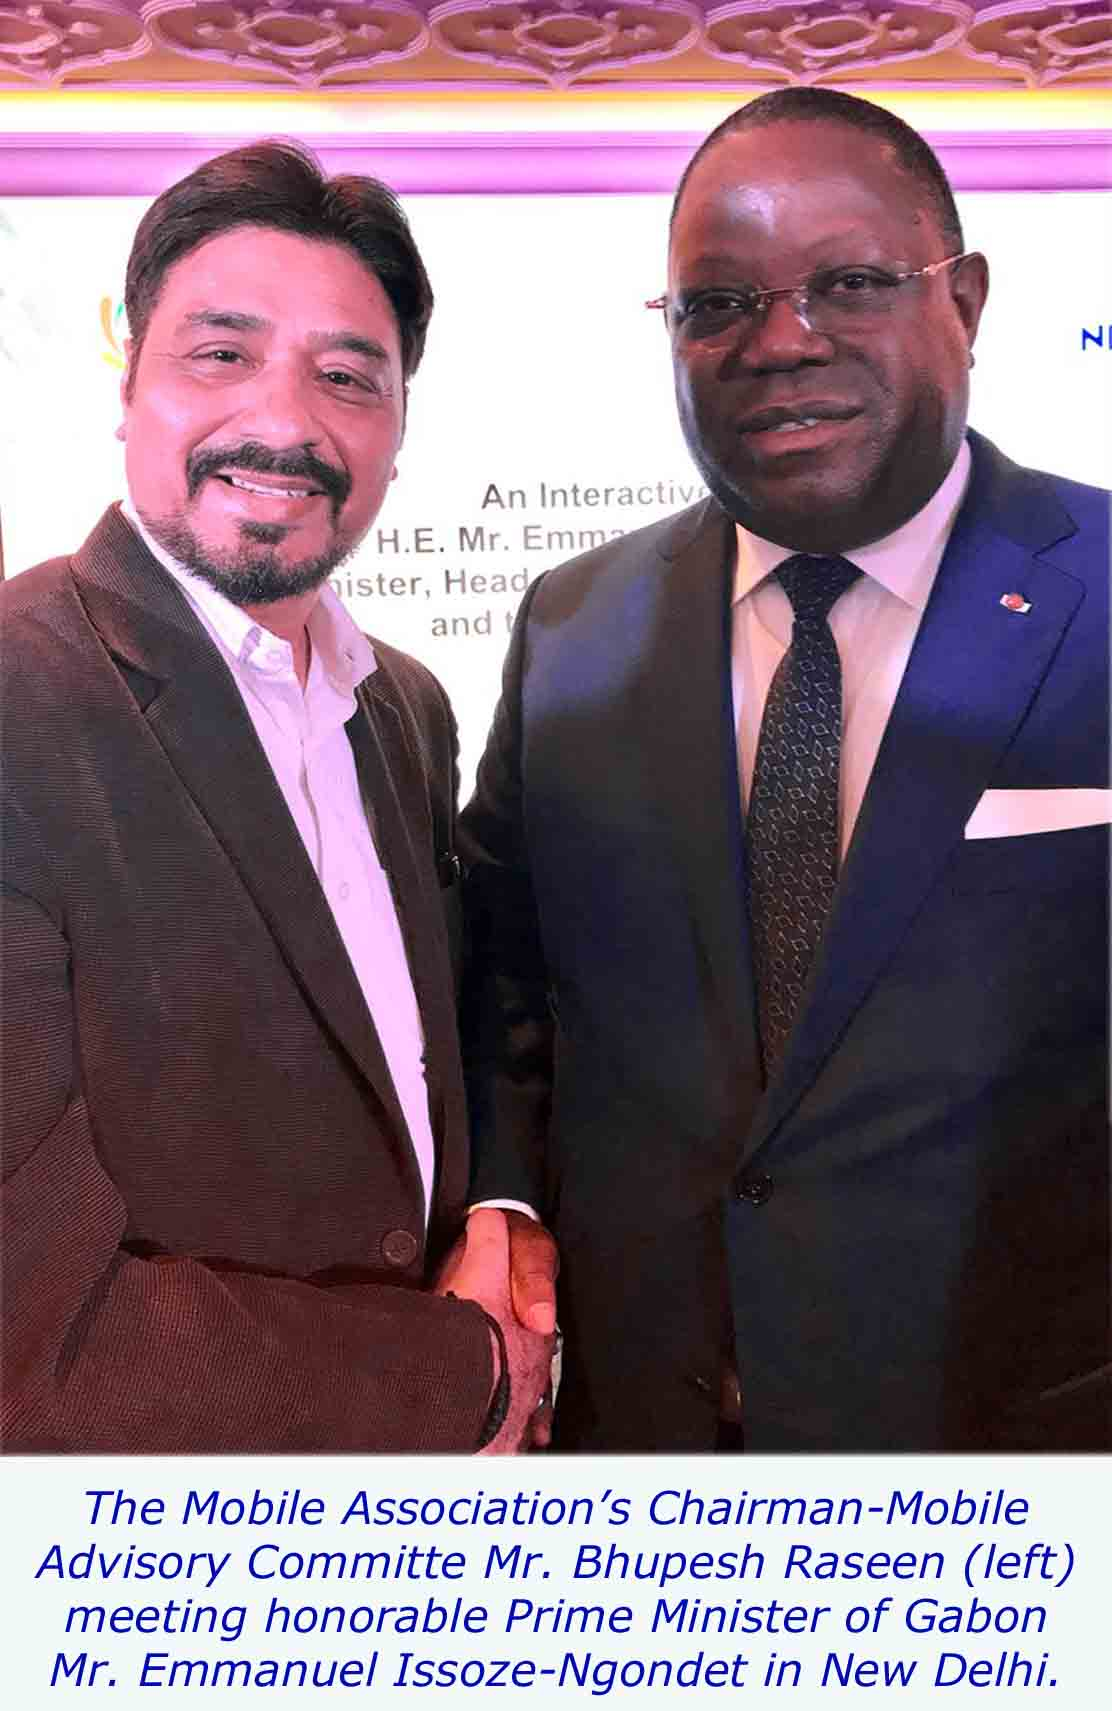 TMA News of The Mobile Association Meeting with the Honorable Prime Minister of Gabon Mr. Emmaneul Issoze–Ngondet at New Delhi